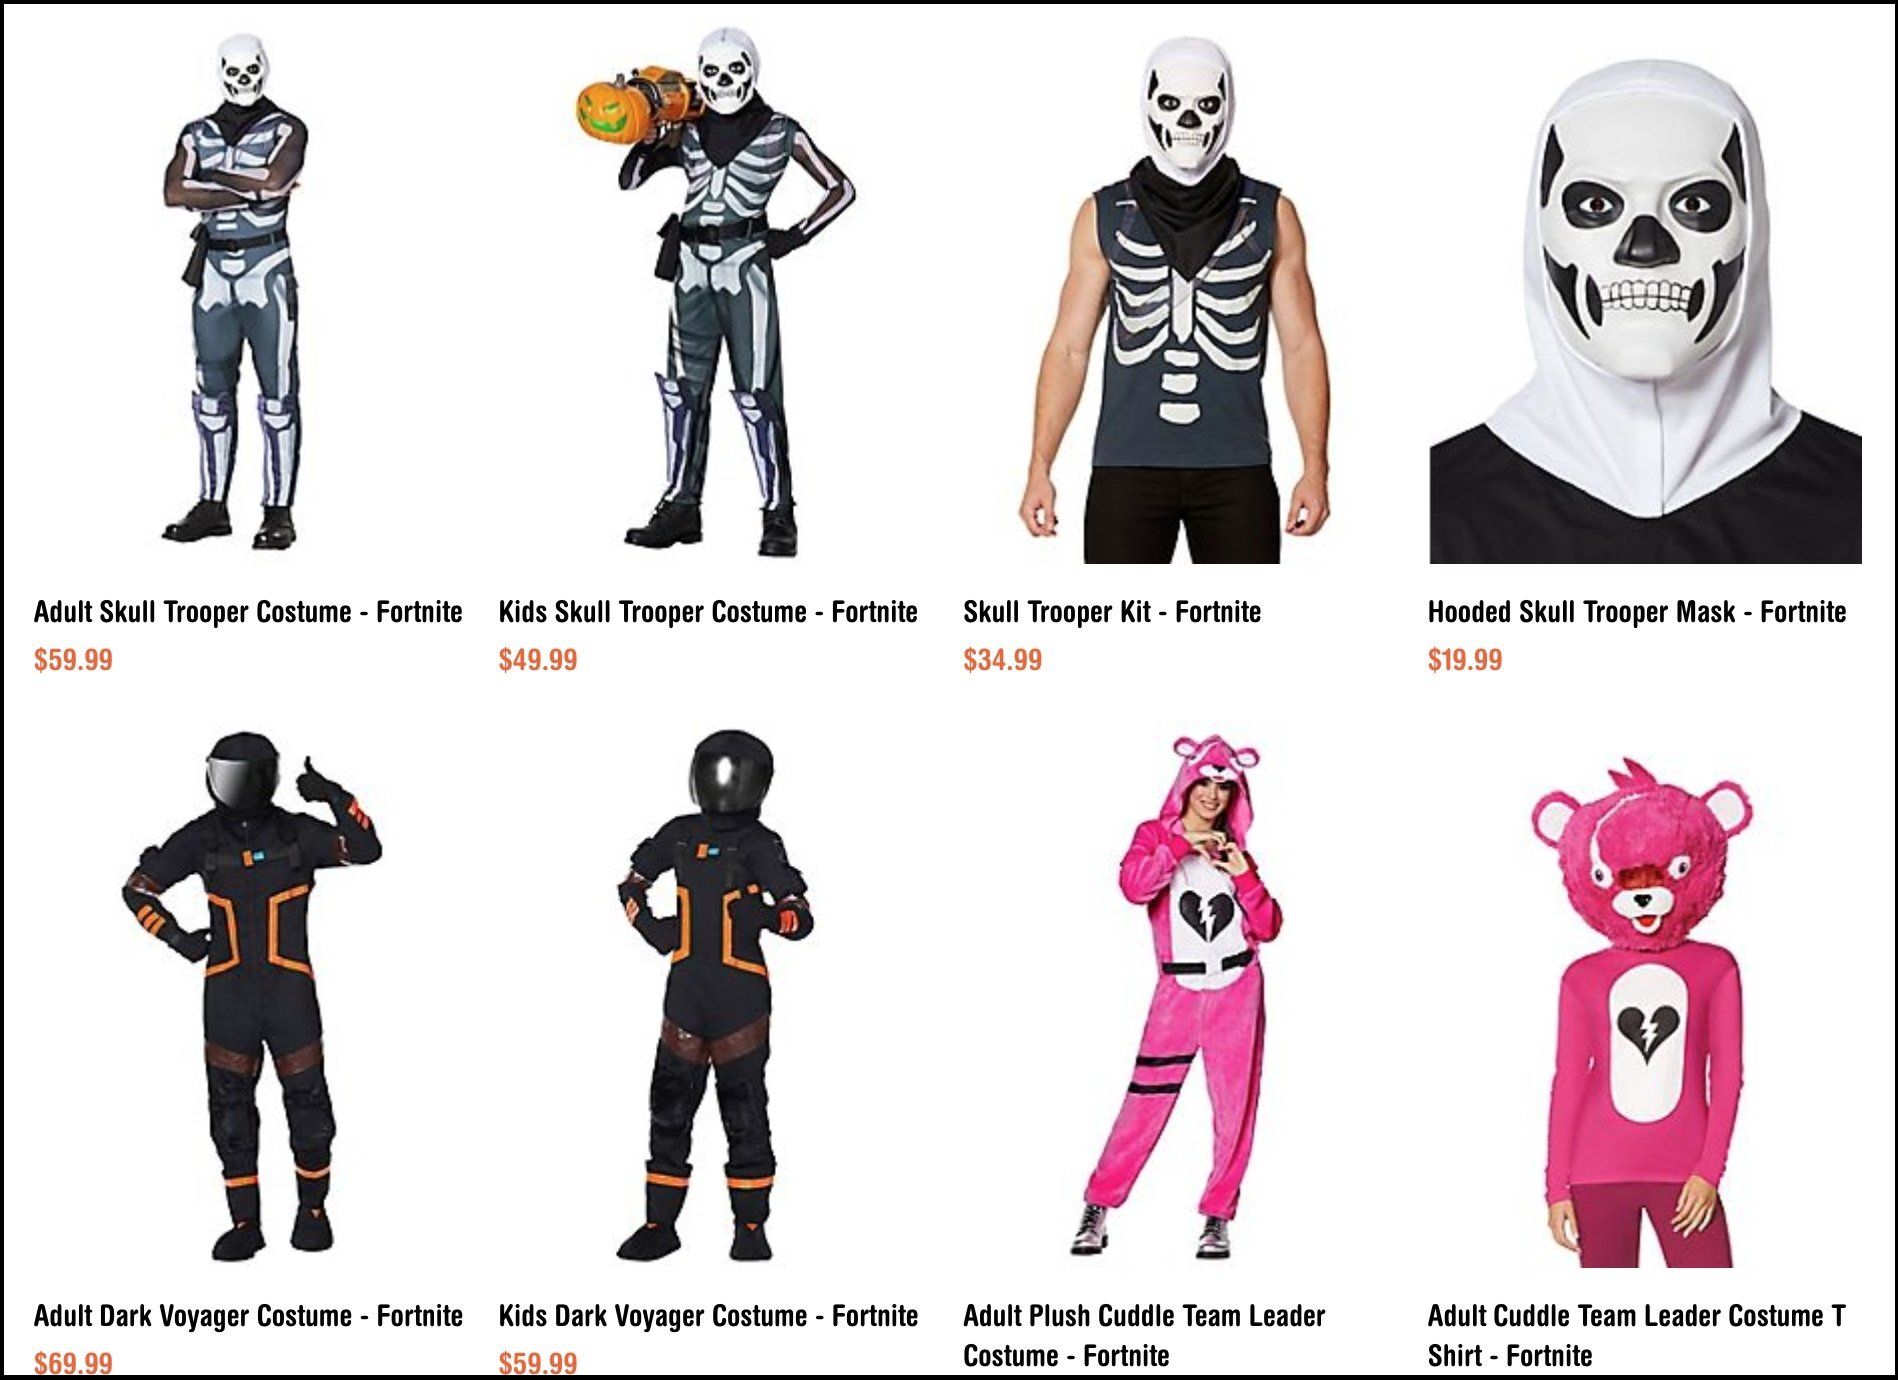 Spirit Halloween And Spencer S To Sell Fortnite Costumes Allgamers